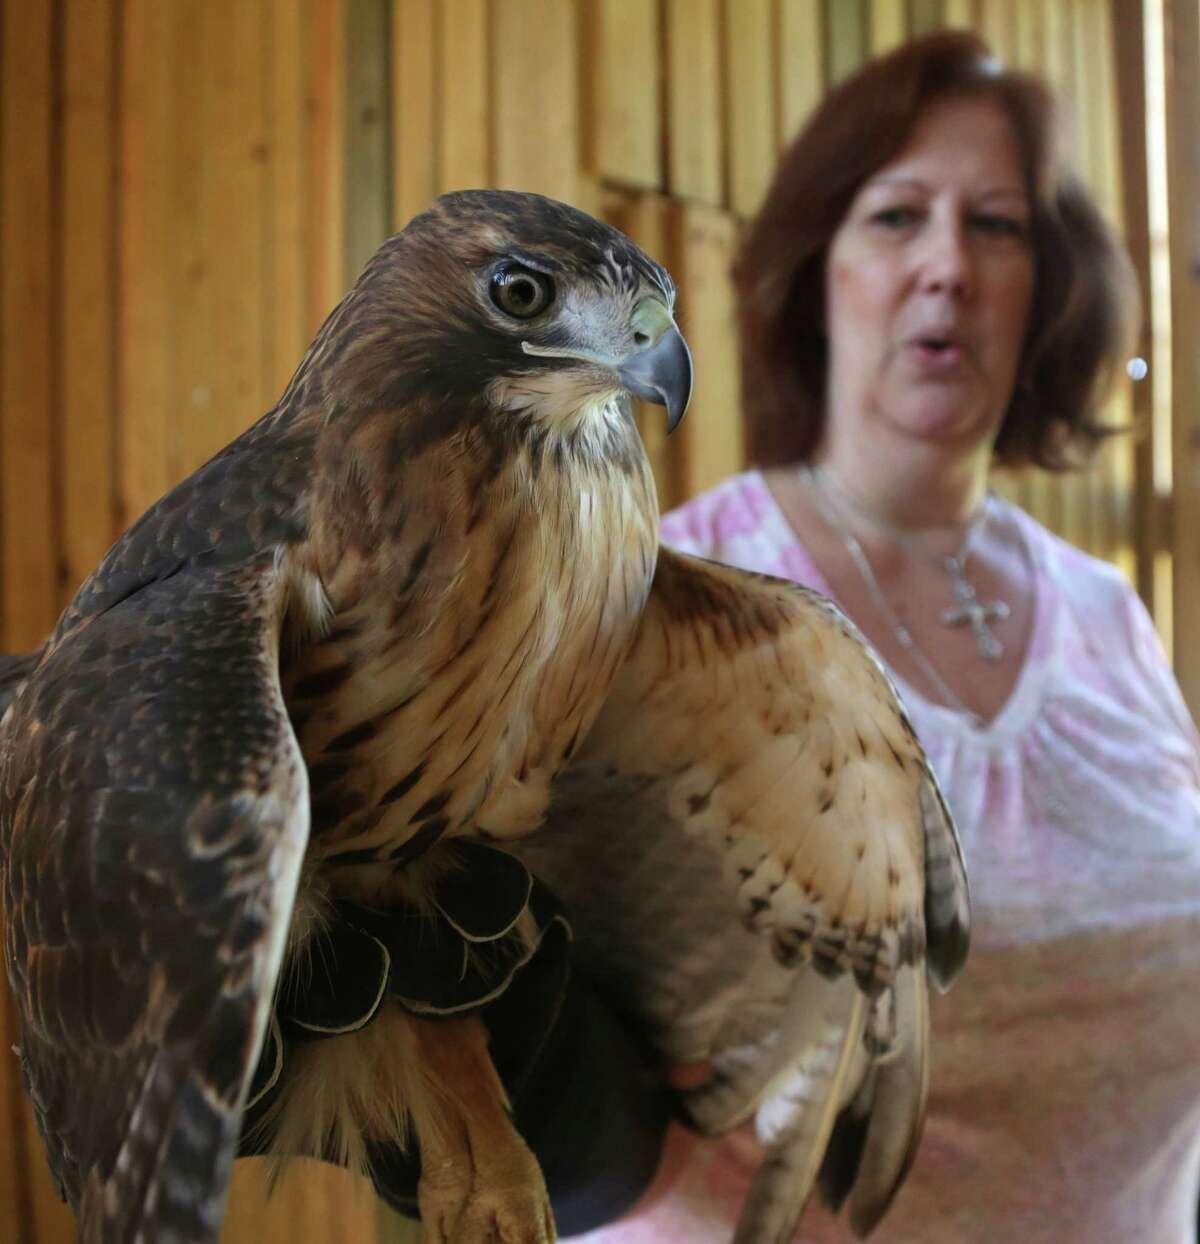 Friends of Texas Wildlife Executive Director Lisa Wolling said the public often mistakenly believes the state's wildlife department is responsible for caring for wild animals like this Red-tailed Hawk. Instead, that's left to wildlife centers and volunteers, including about 40 volunteers in the Houston area.